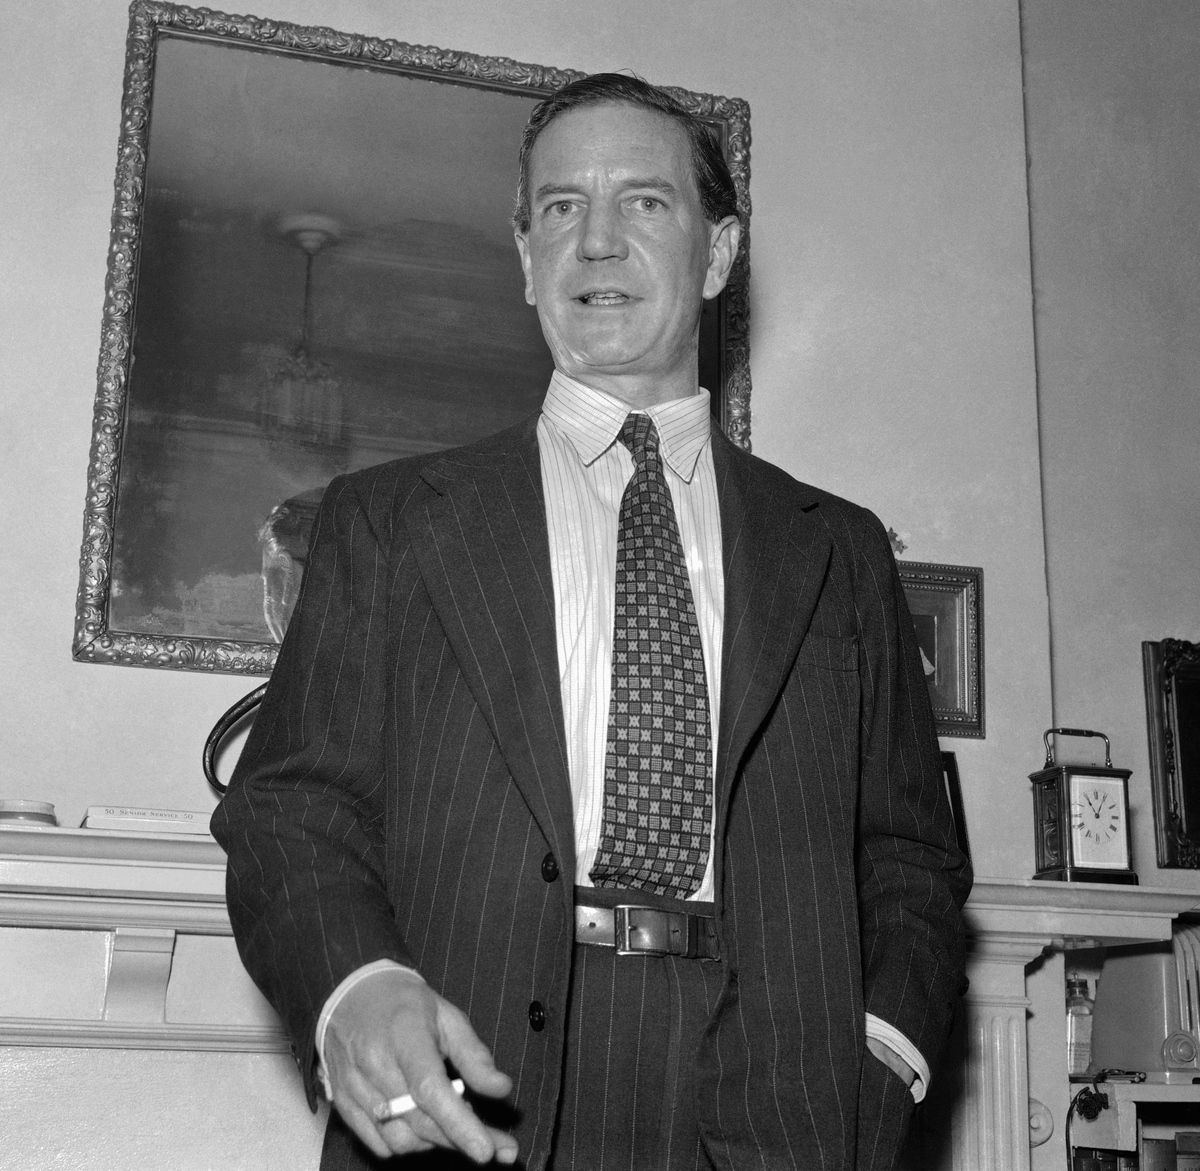 the life and times of kim philby a soviet spy Kim philby, byname of harold adrian russell philby, (born january 1, 1912, ambala while a student at the university of cambridge, philby became a communist and in 1933 a soviet agent history learning site - biography of kim philby los angeles times - '3rd man' spy kim philby, 76.